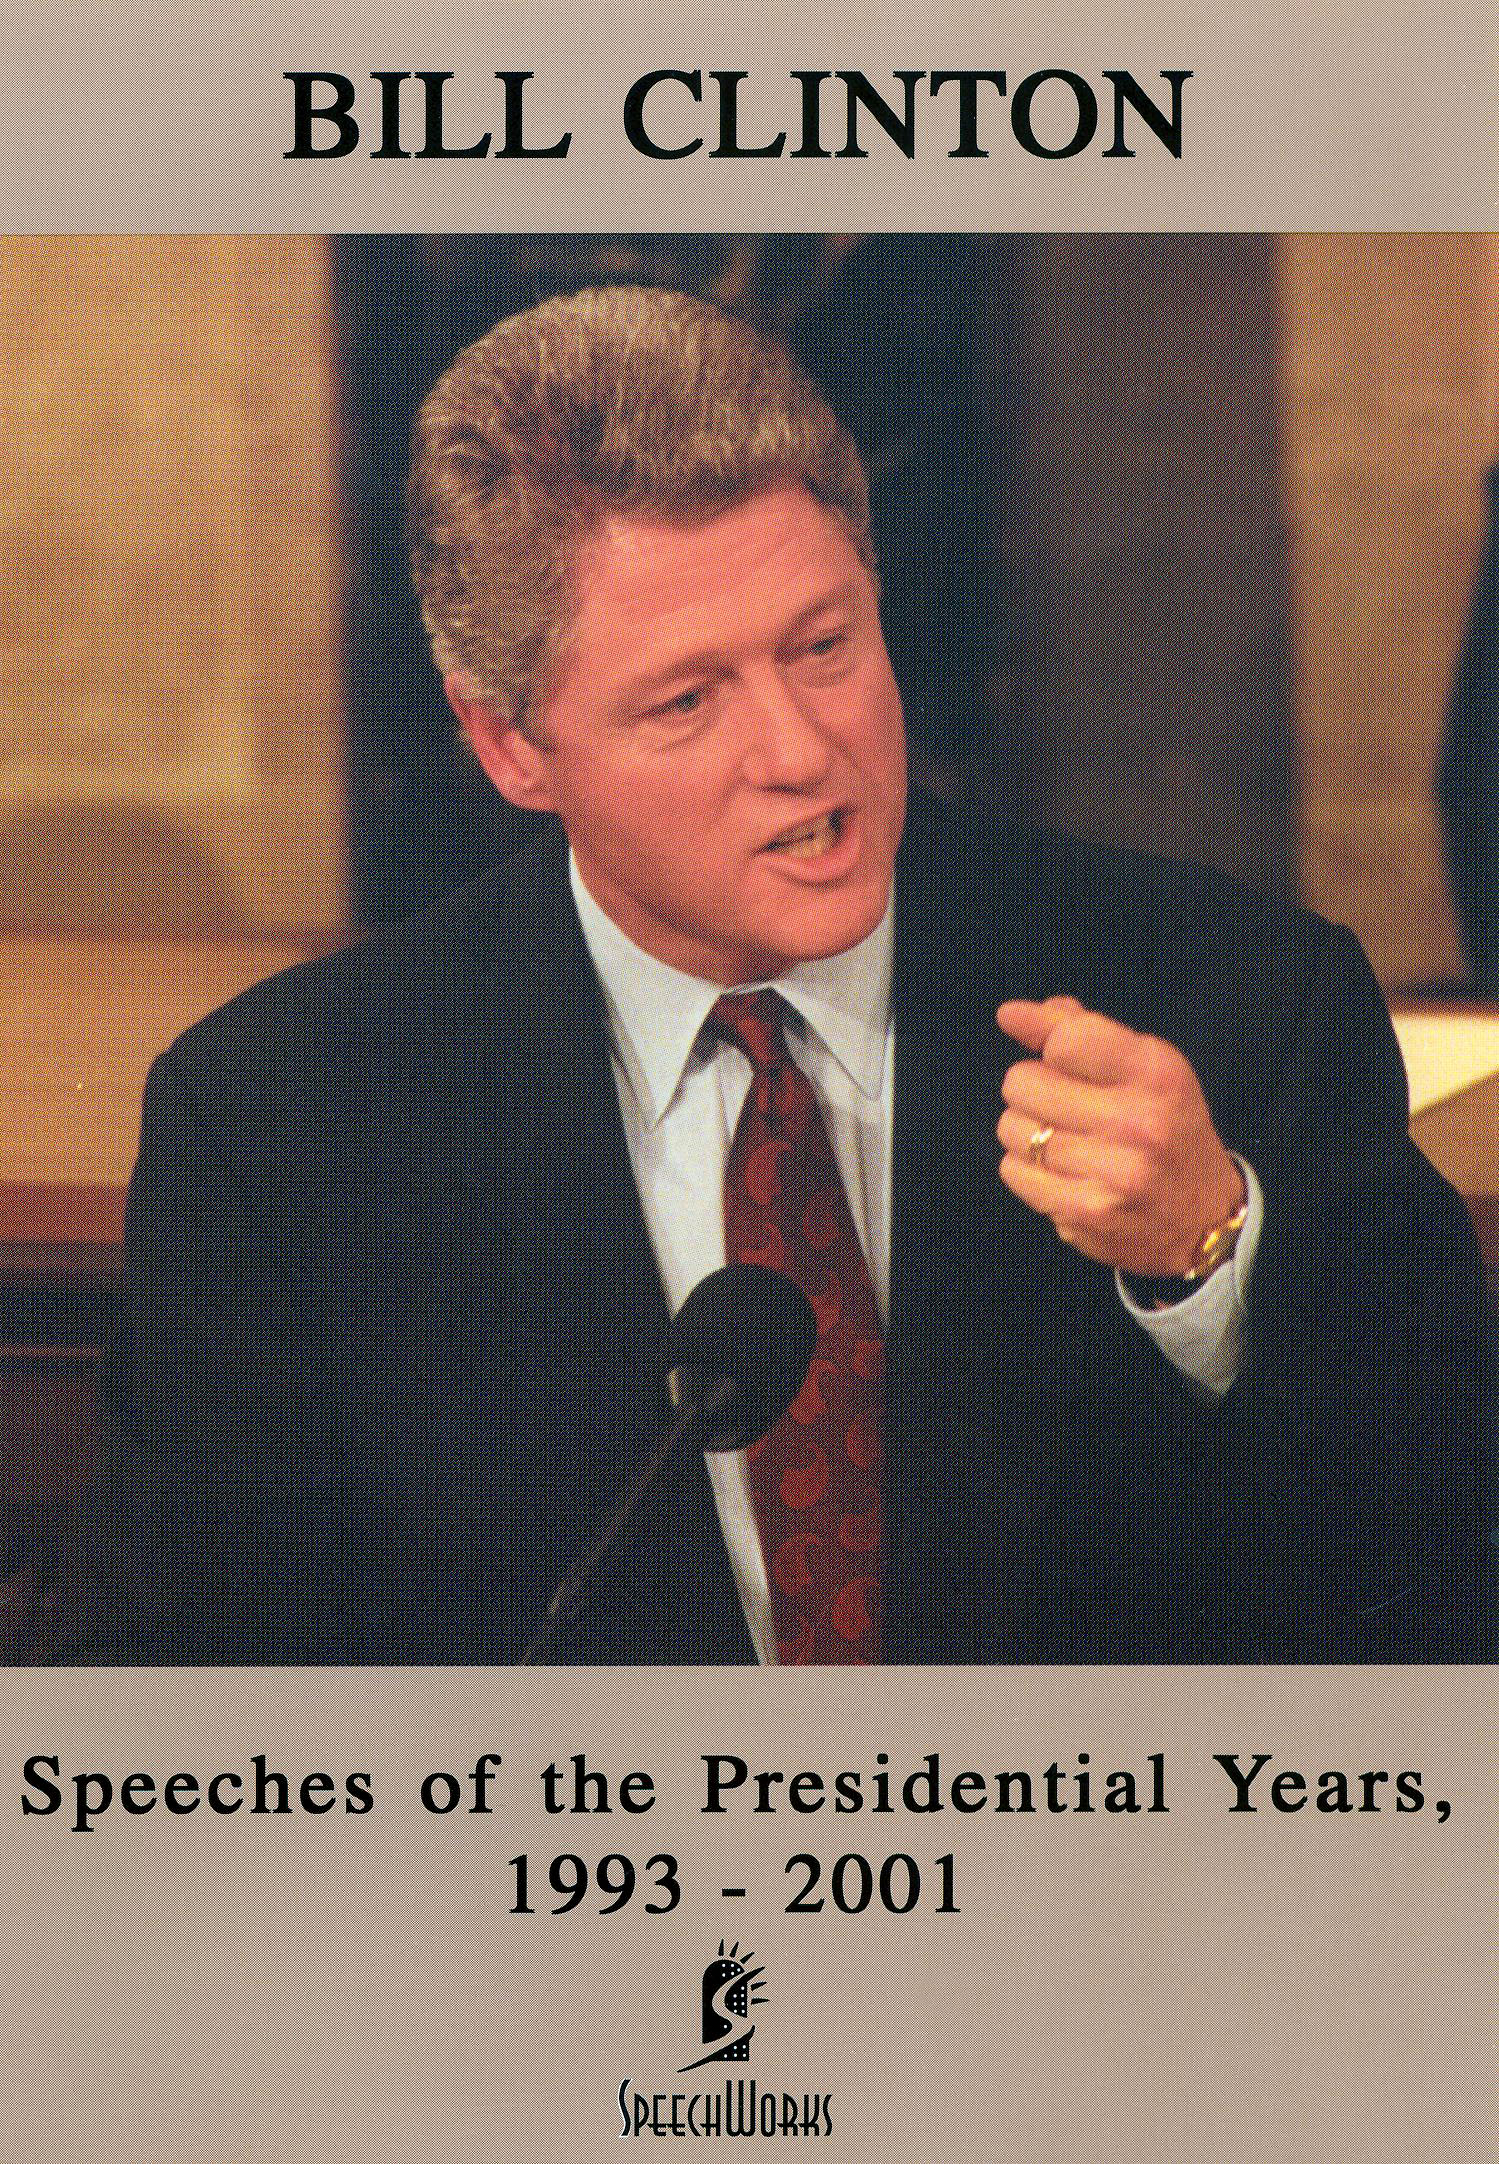 Bill Clinton: Speeches of the Presidential Years 1993-2001